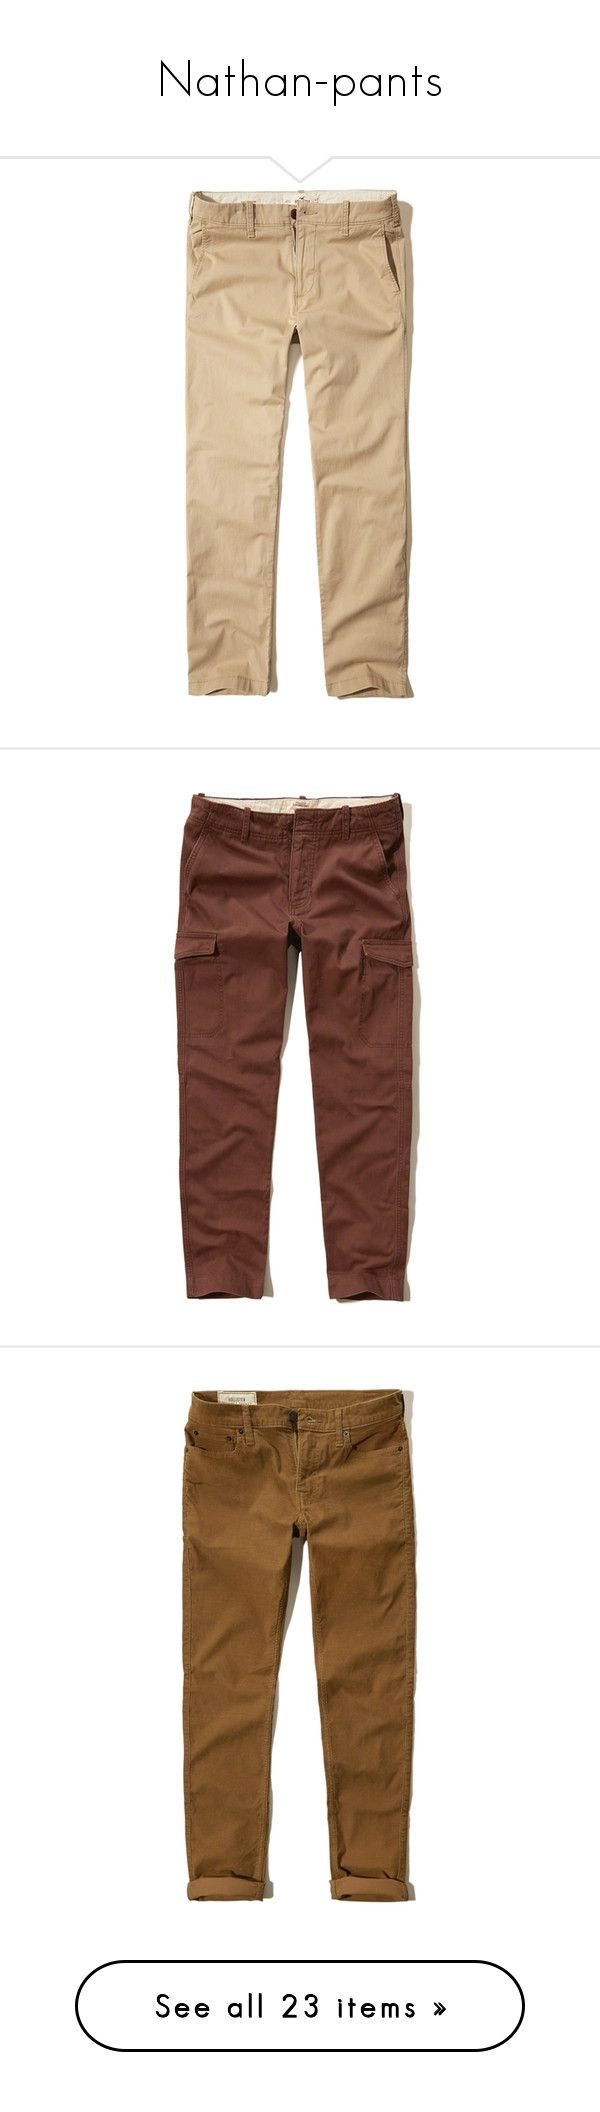 """""""Nathan-pants"""" by those-families ❤ liked on Polyvore featuring mackinnonsiblings, men's fashion, men's clothing, men's pants, men's casual pants, light khaki, mens slim fit pants, mens khaki pants, mens chinos pants and mens slim pants"""